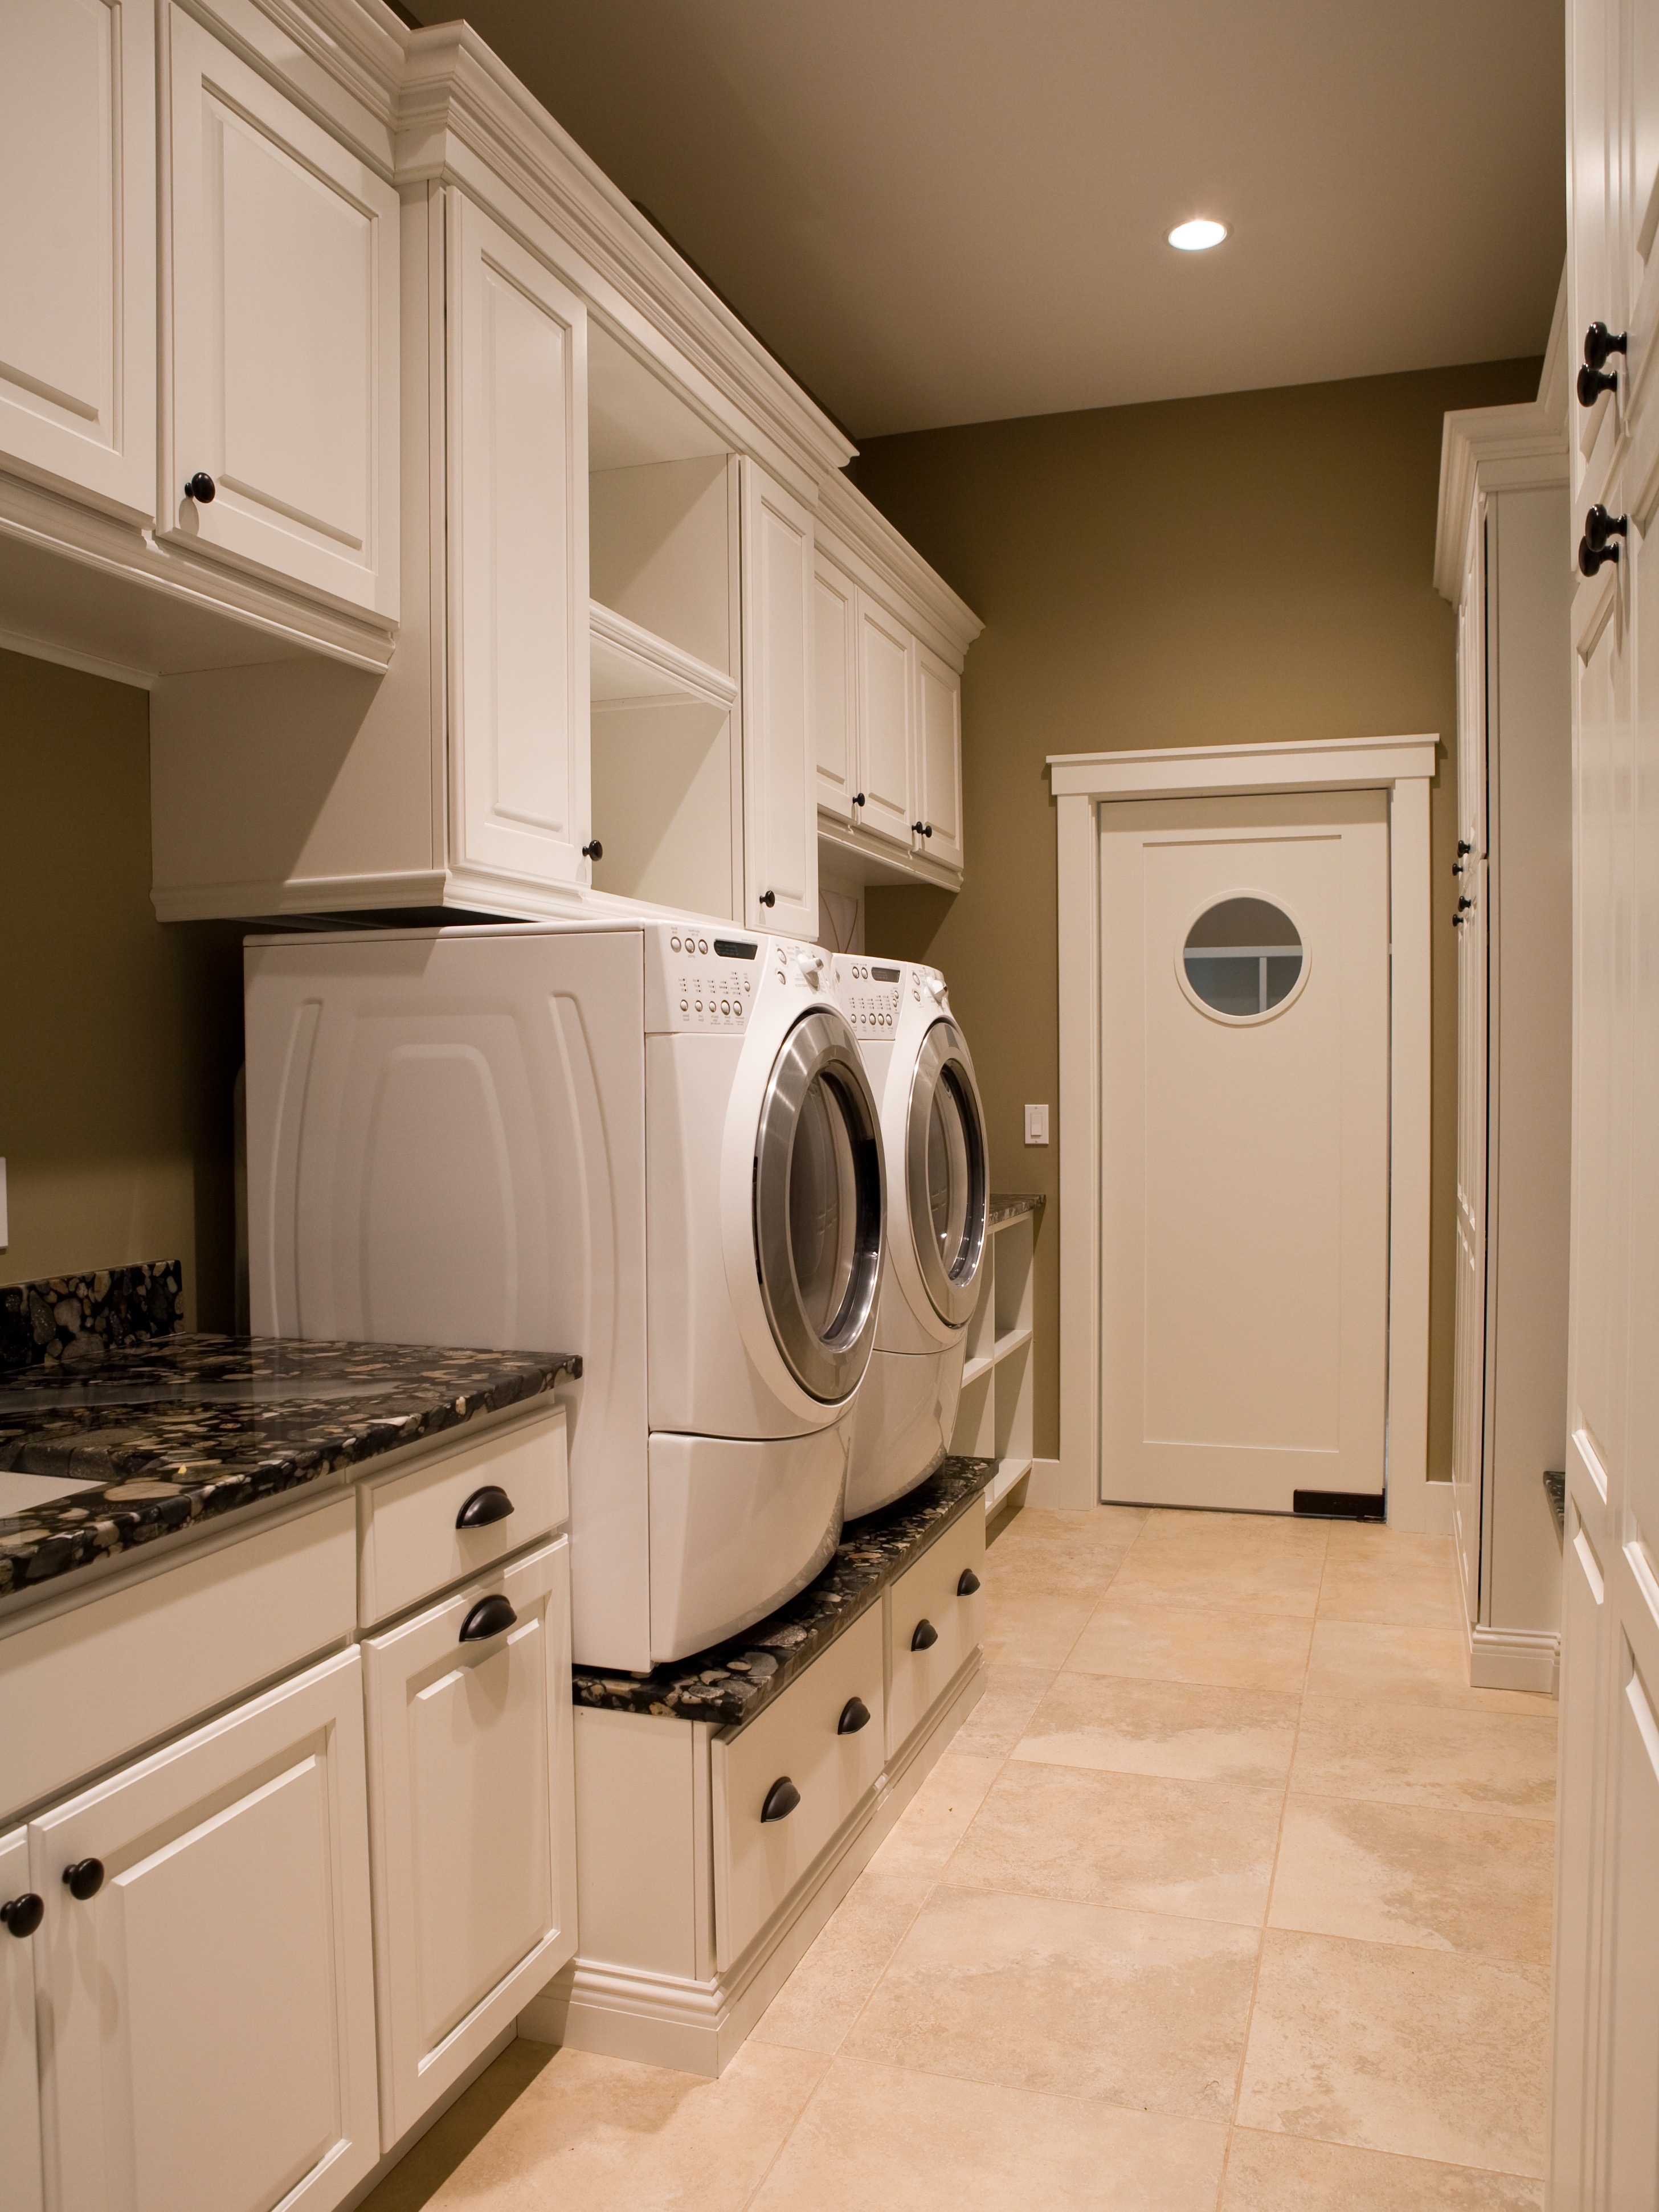 Modern Built In Storage Drawers For Minimalist Laundry Room (Image 16 of 26)